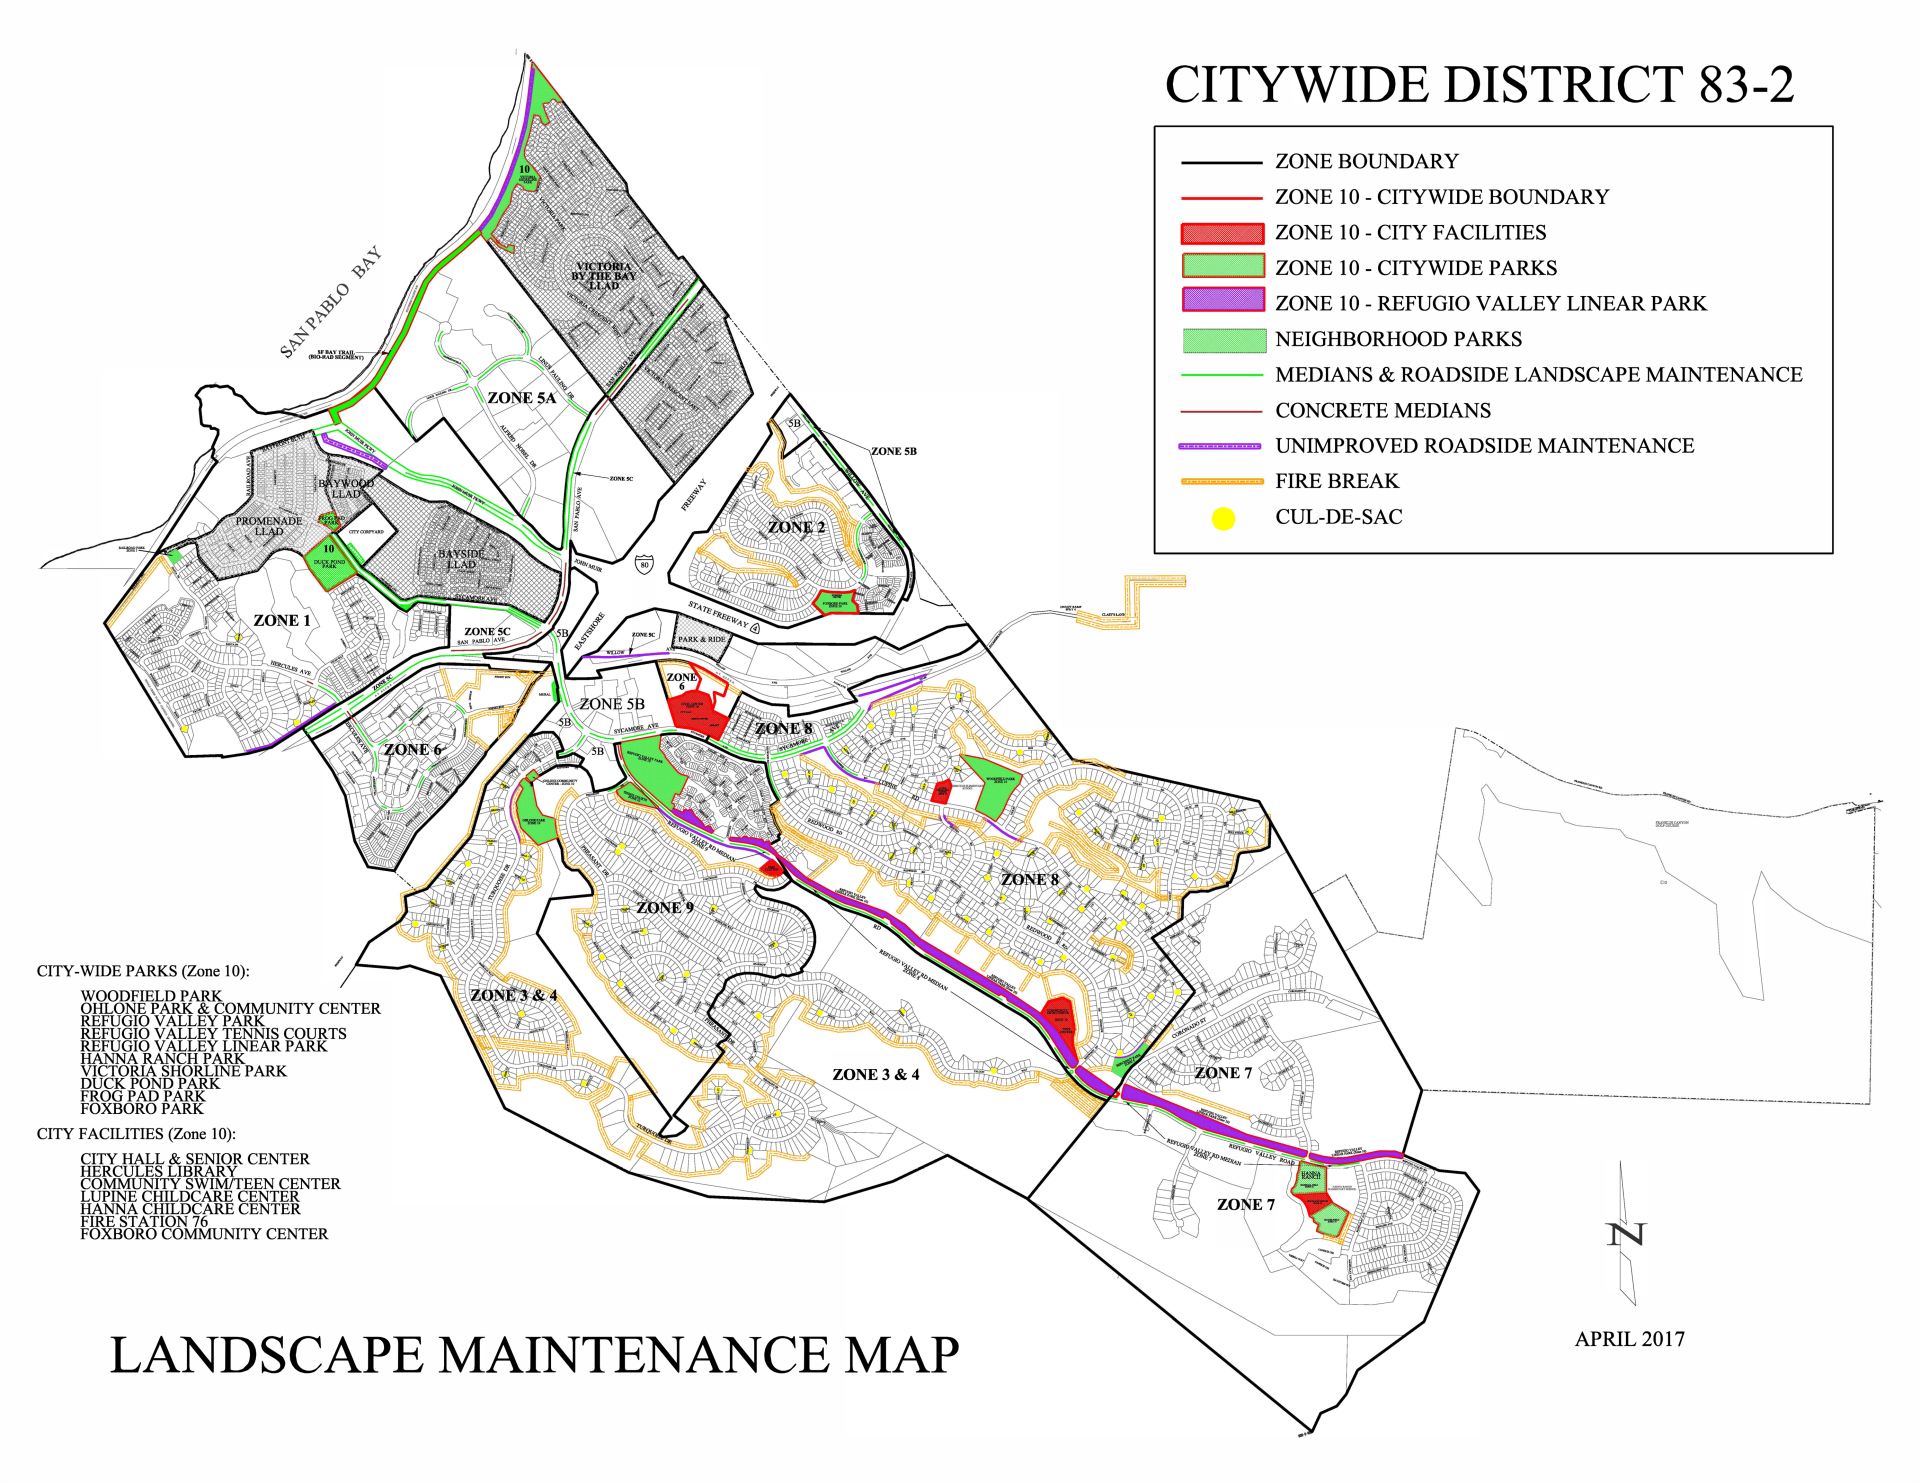 Citywide Zone Map - 2017